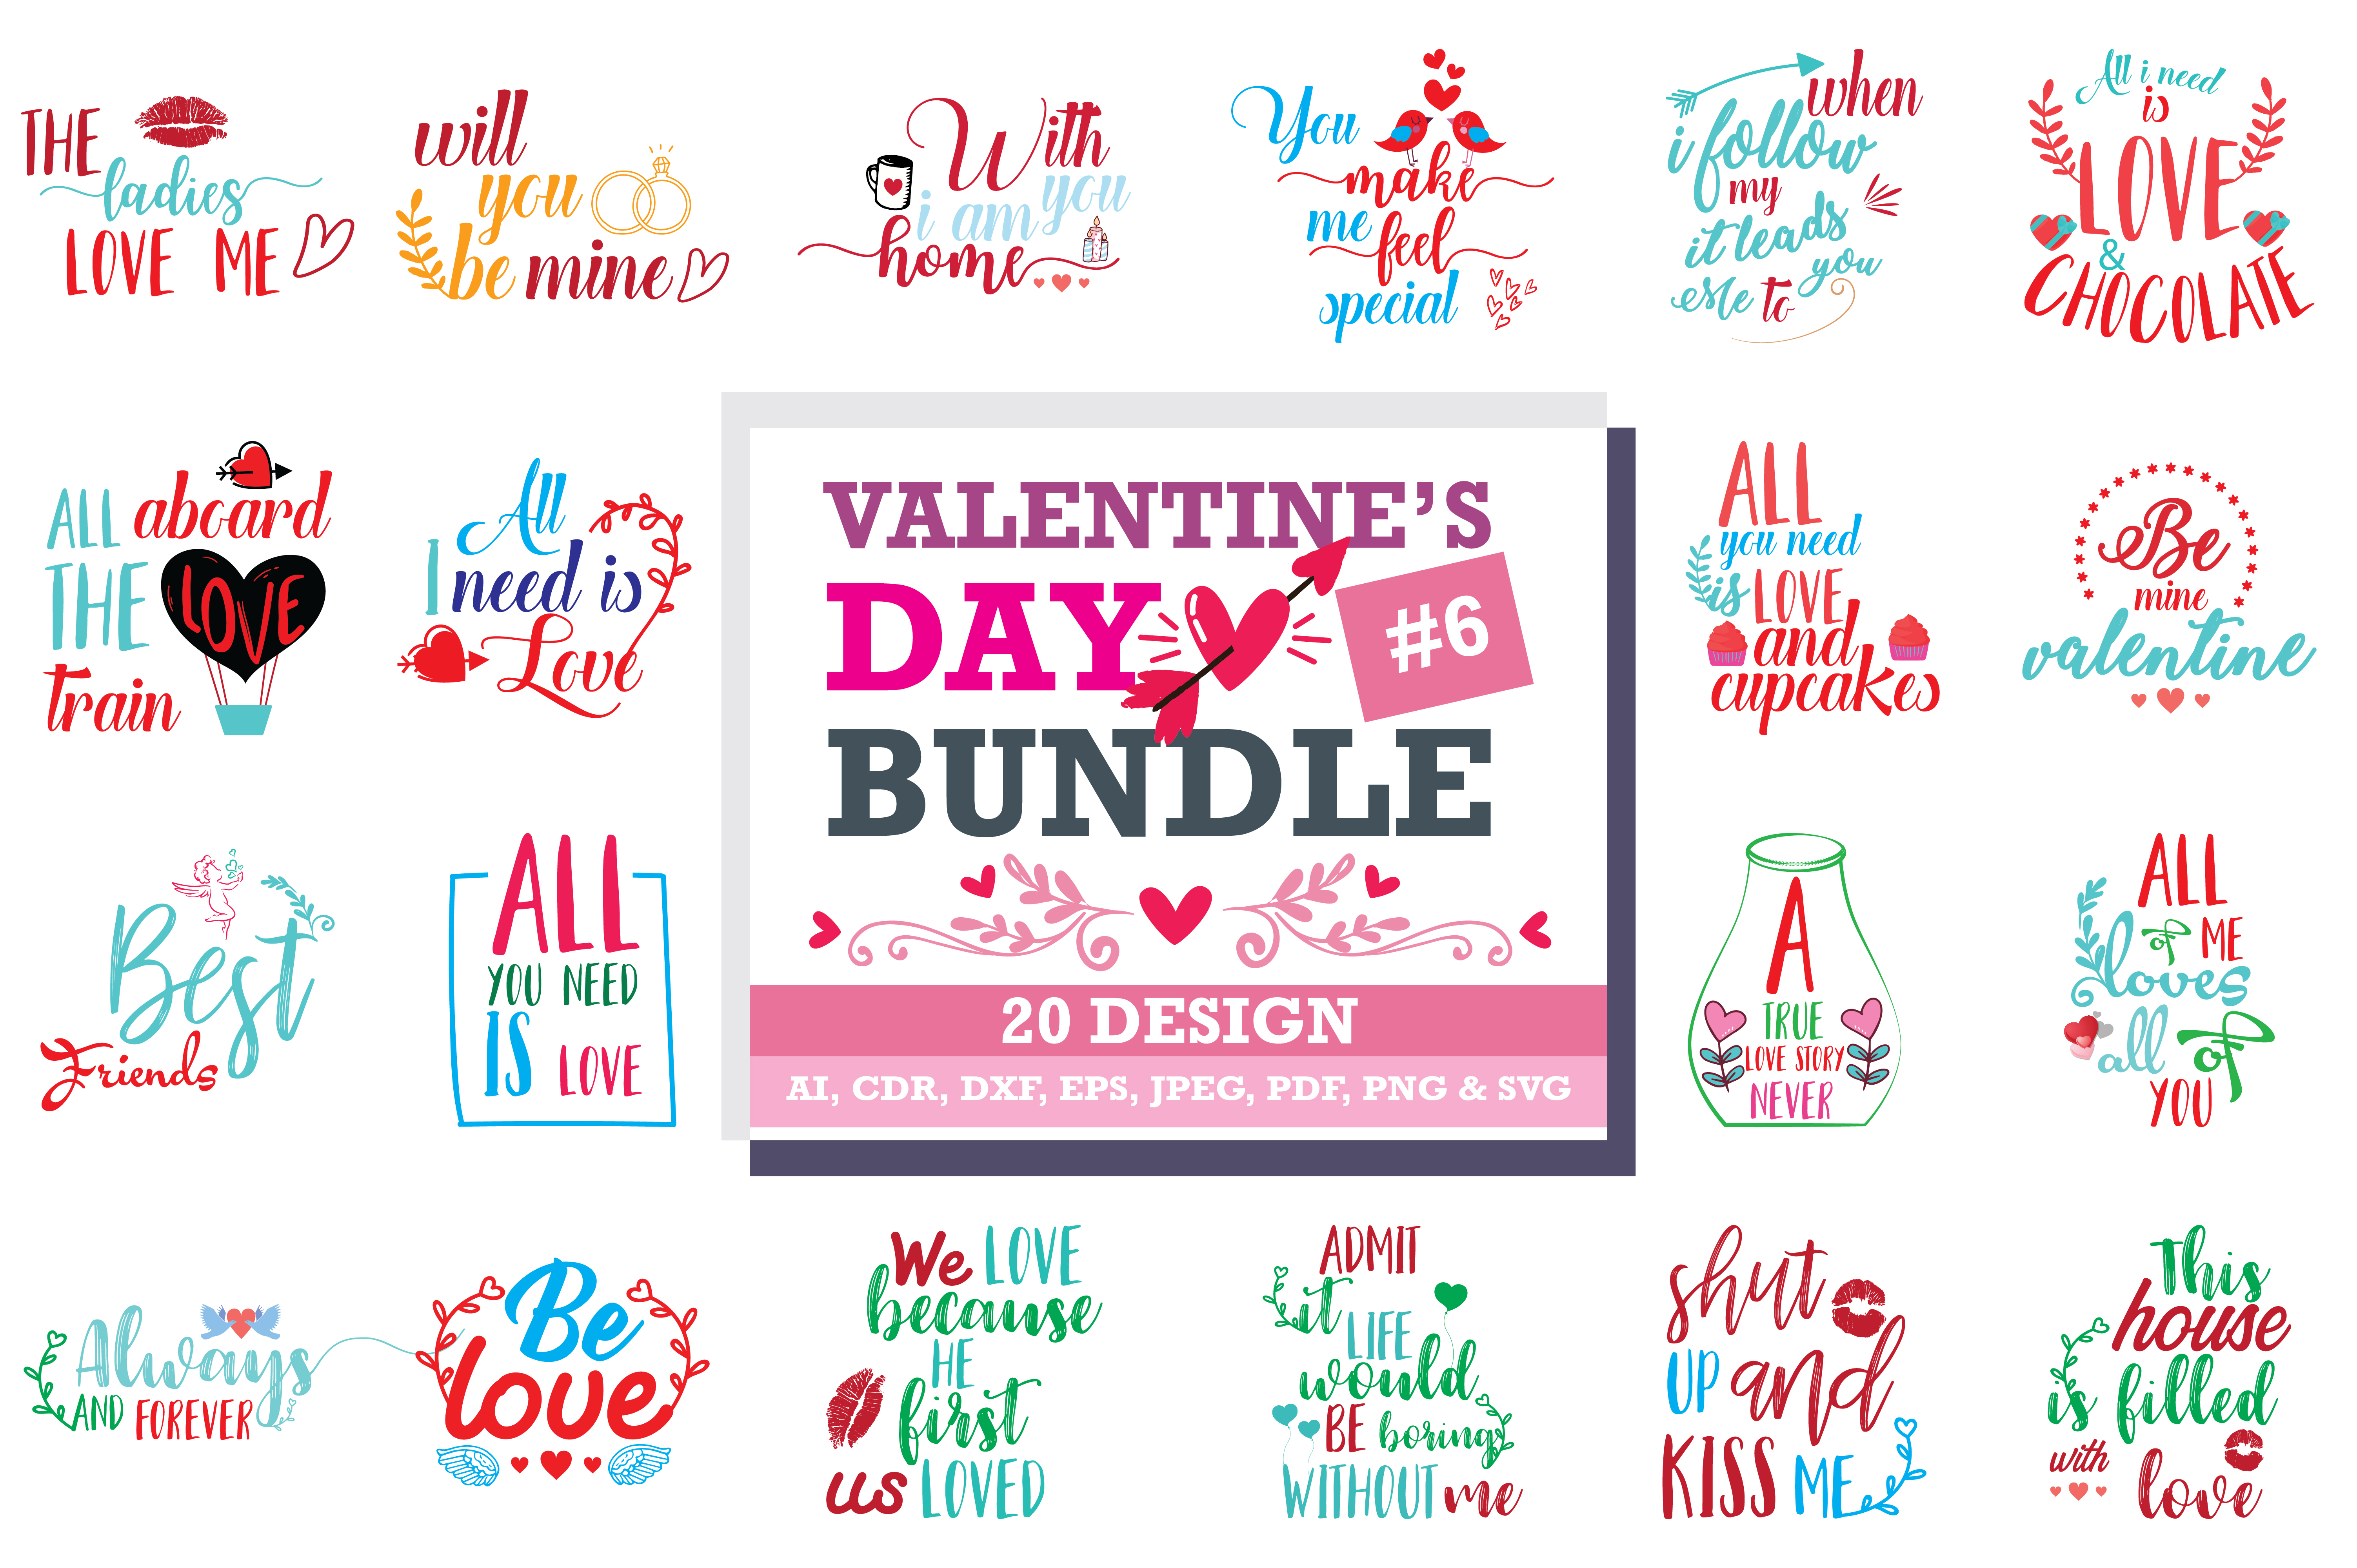 Romantic SVG Bundle Graphic by TheLucky - Creative Fabrica